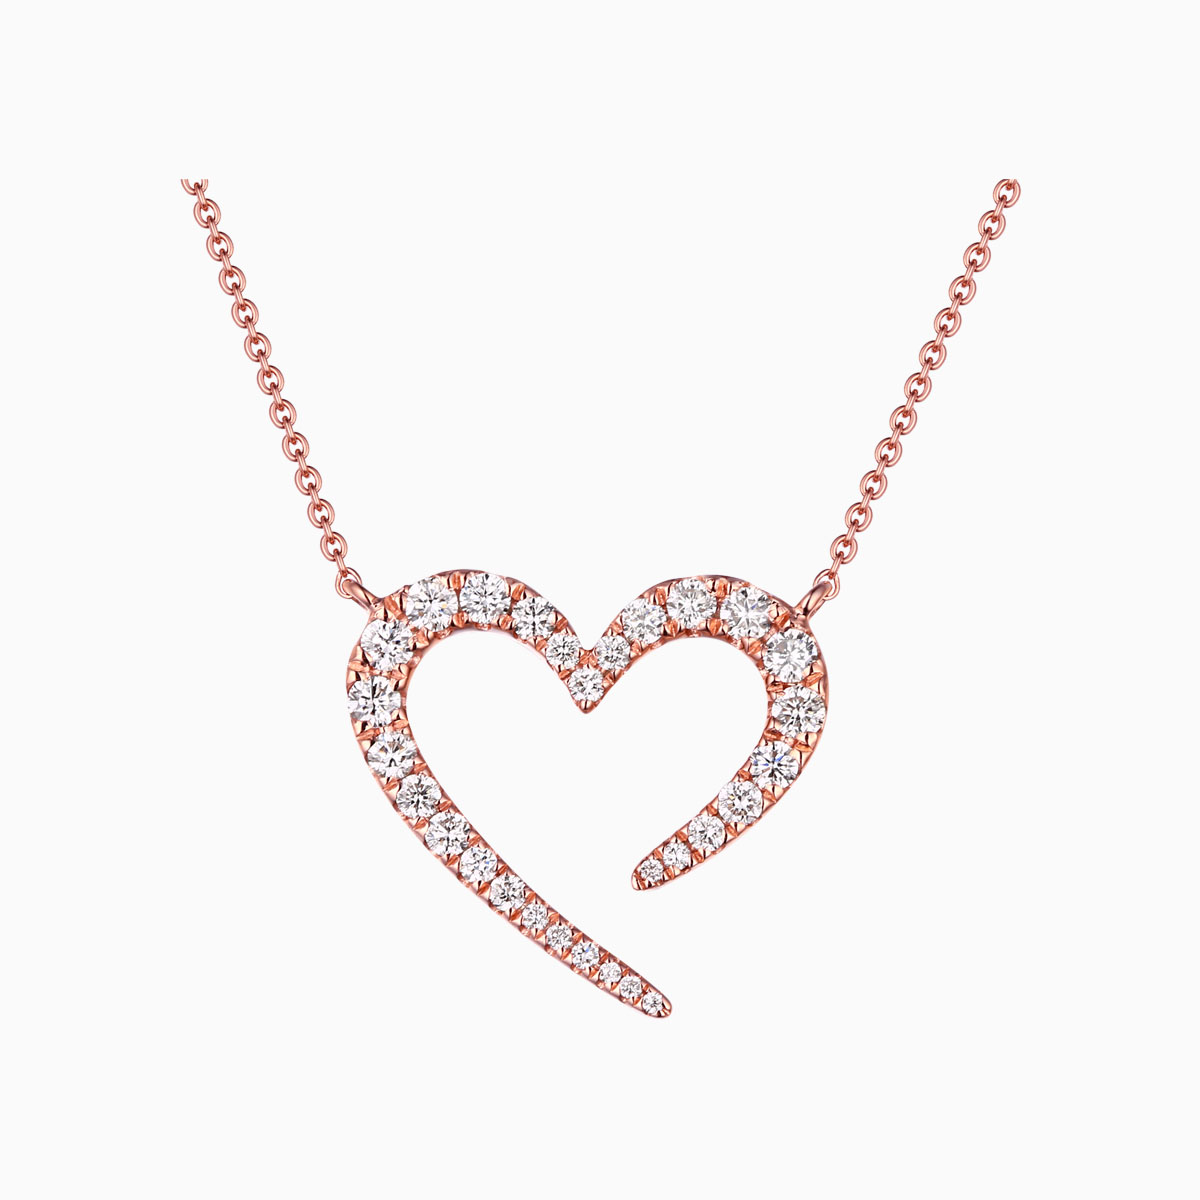 NL25726WHT- 14K Rose Gold Diamond Necklace, 0.45 TCW